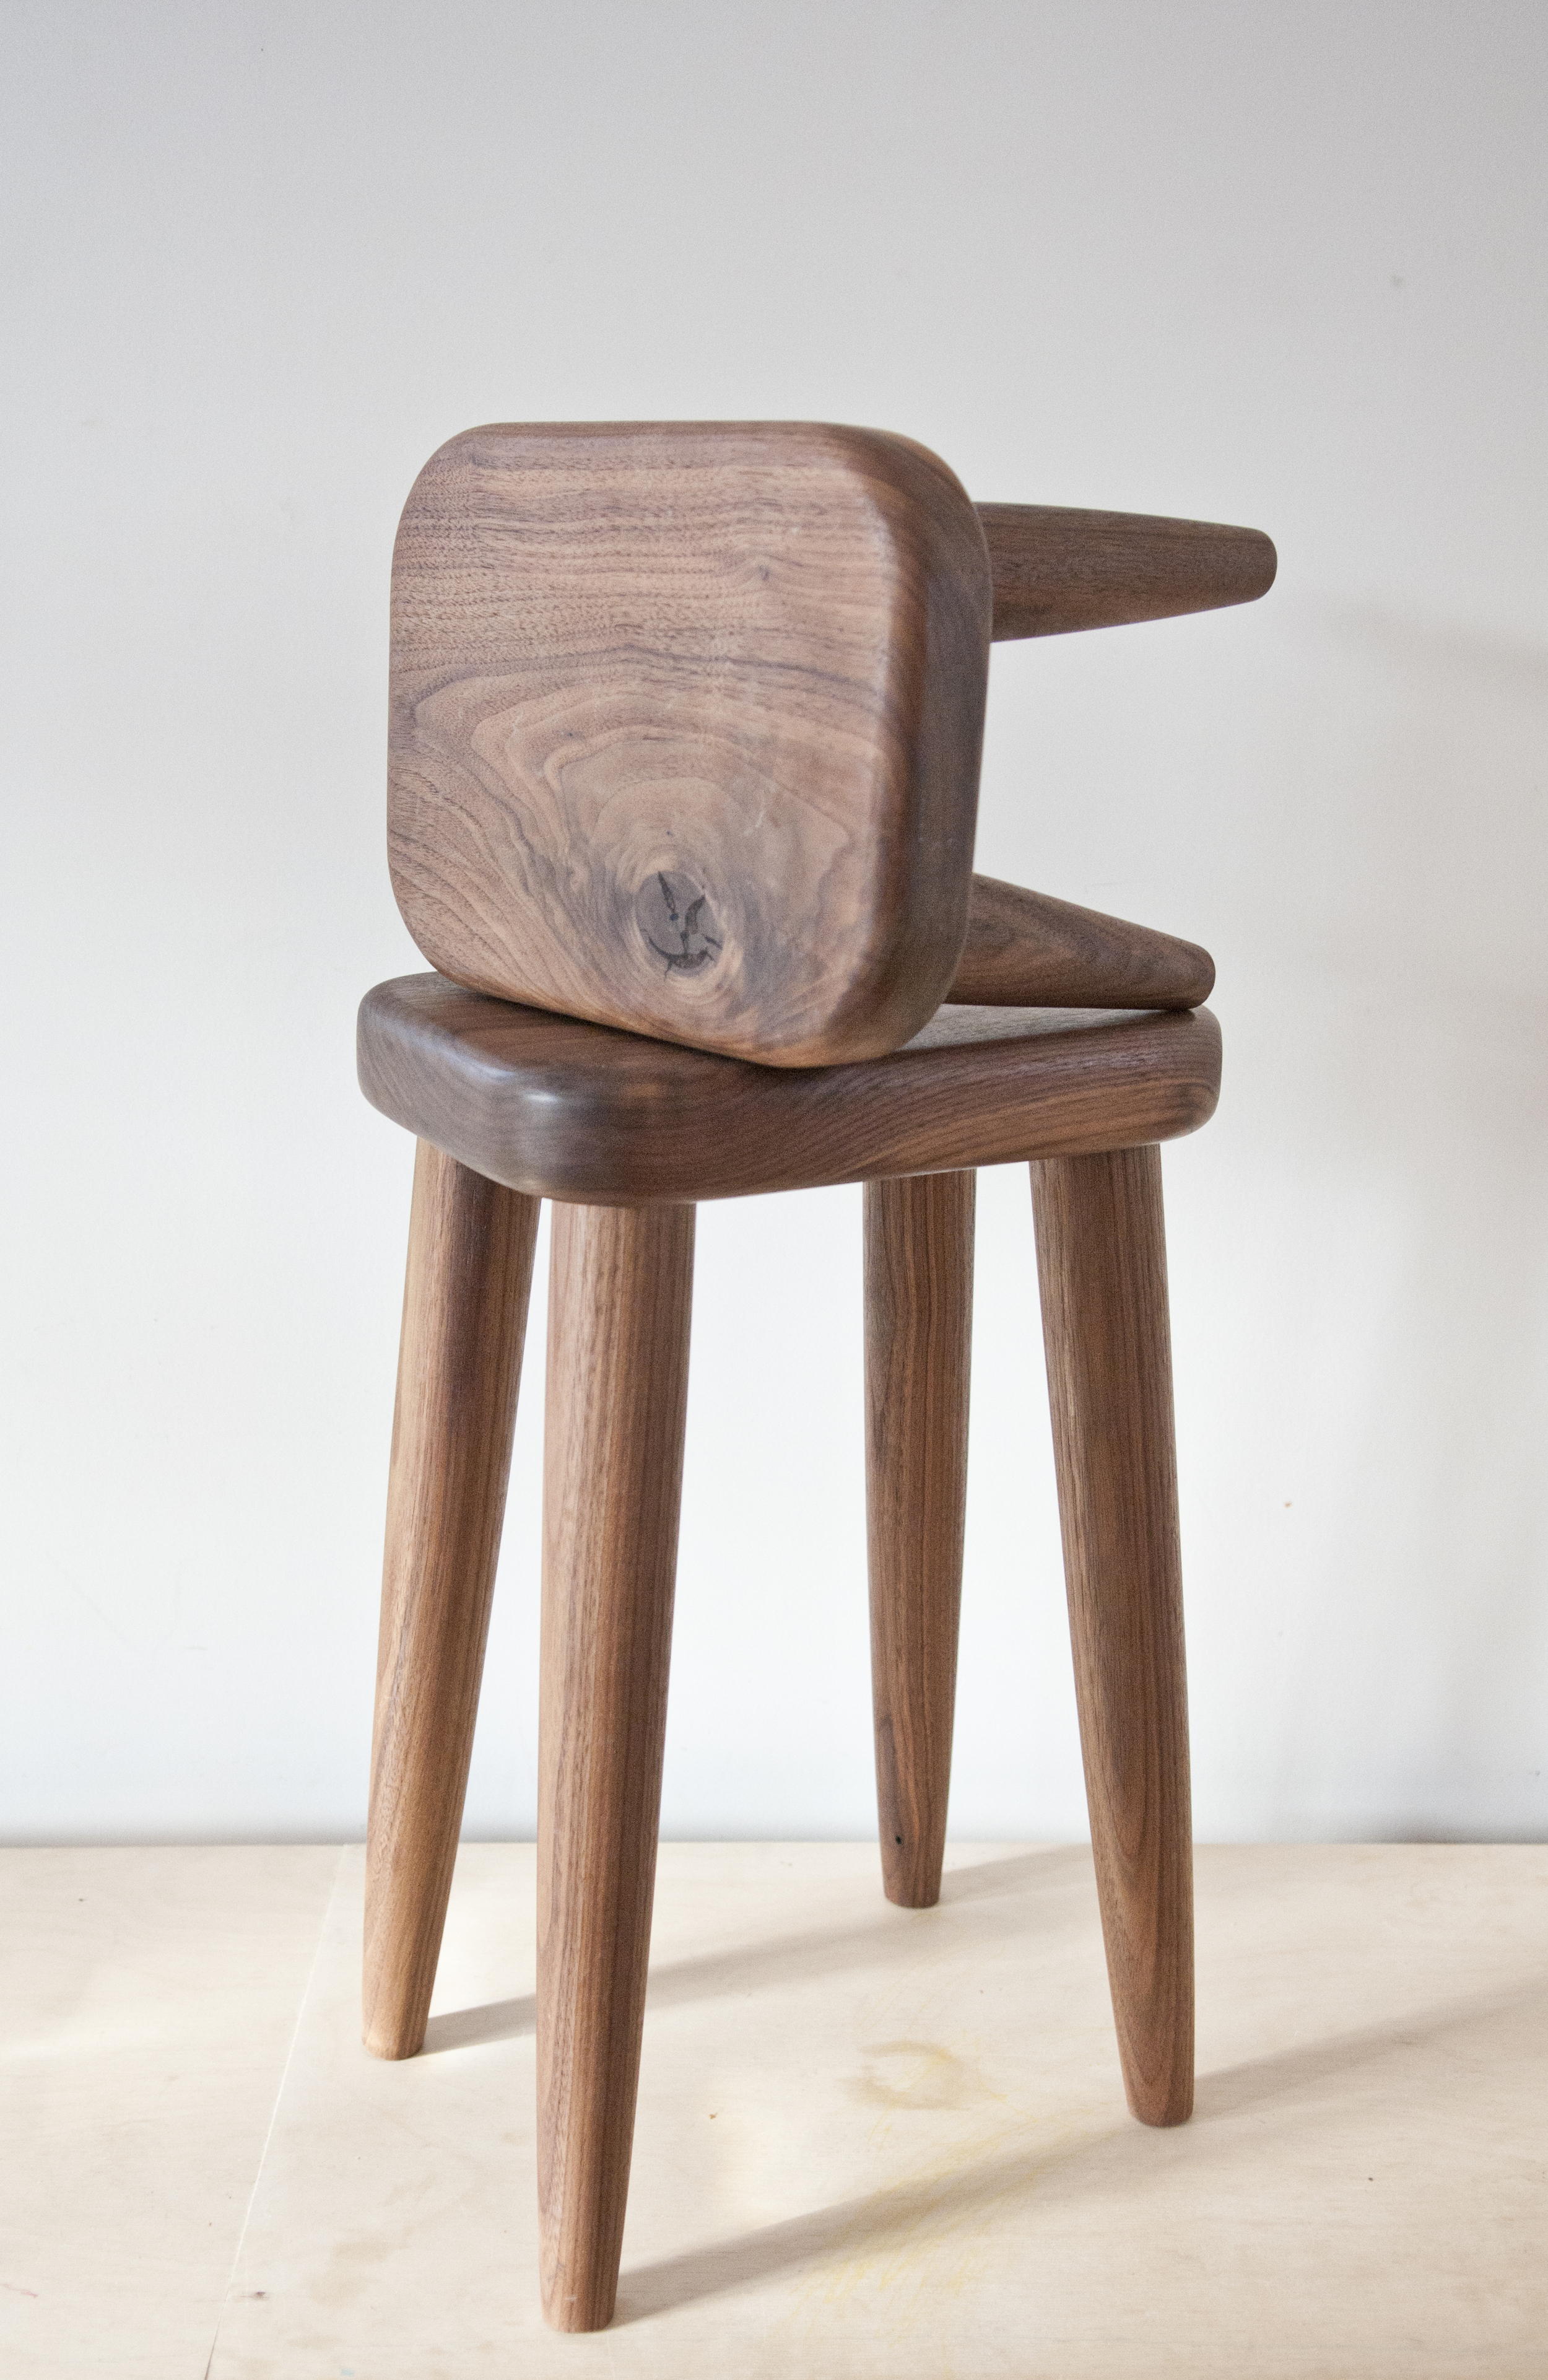 stools_18_and_9_inches.jpg